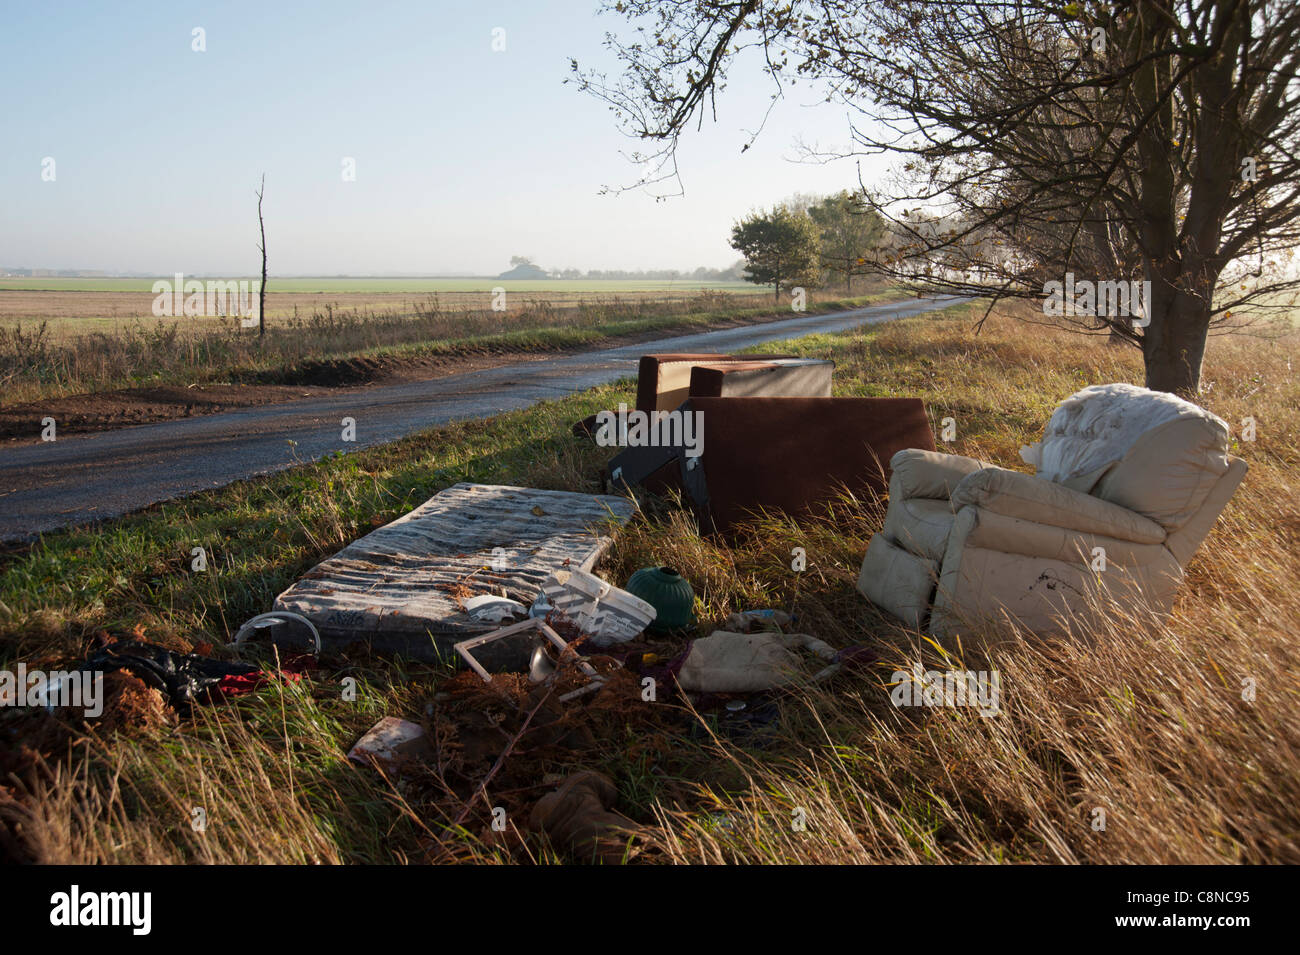 Fly tipped rubbish at the side of a rural road in Cambridgeshire - Stock Image